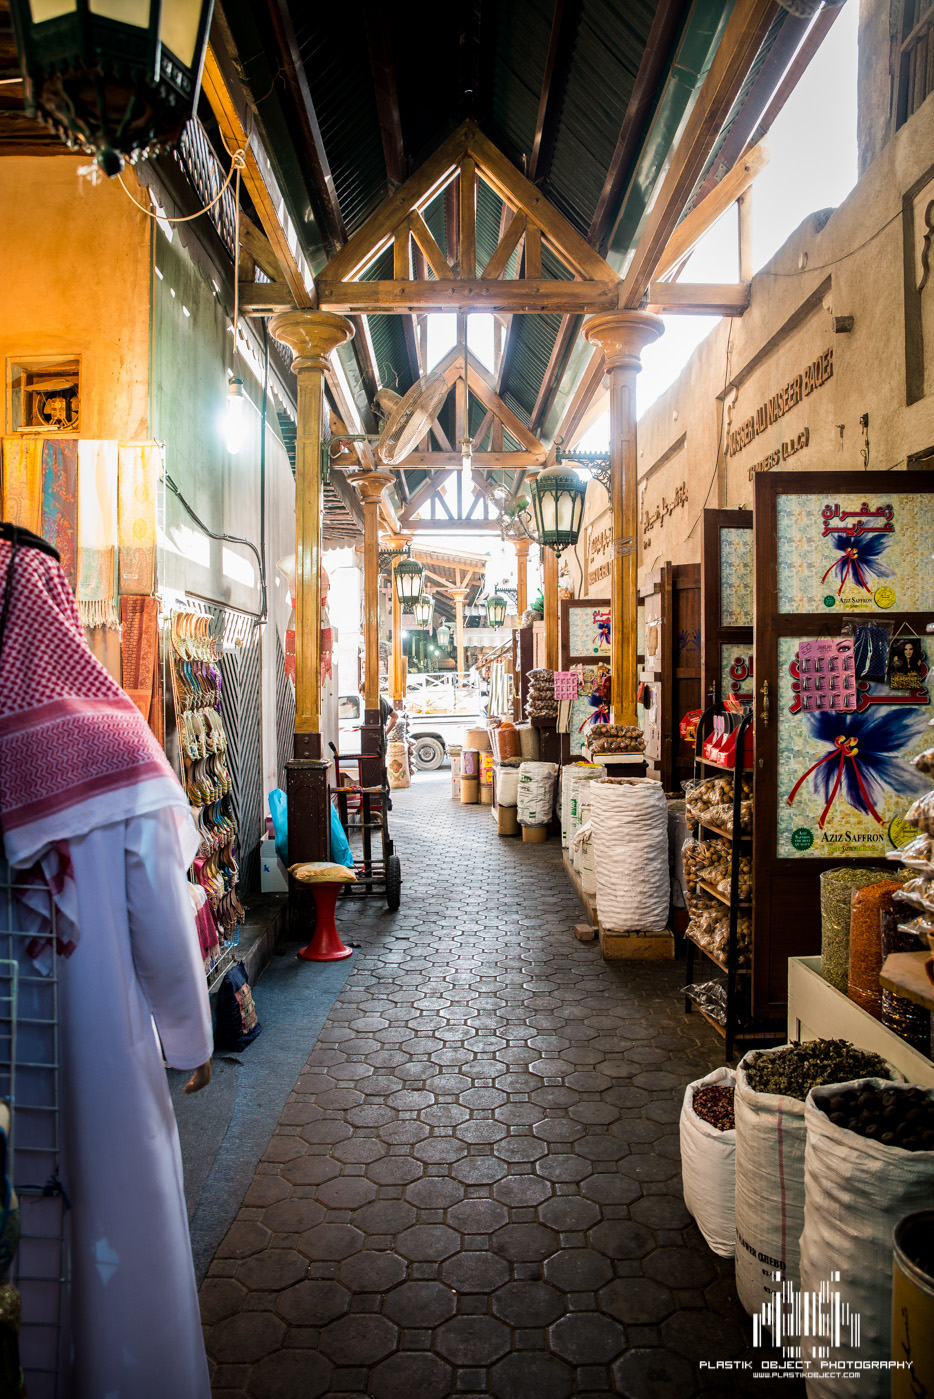 And for one moment, the normally busy halls of the Spice Souk were empty. No prayer, no nothing, just empty.